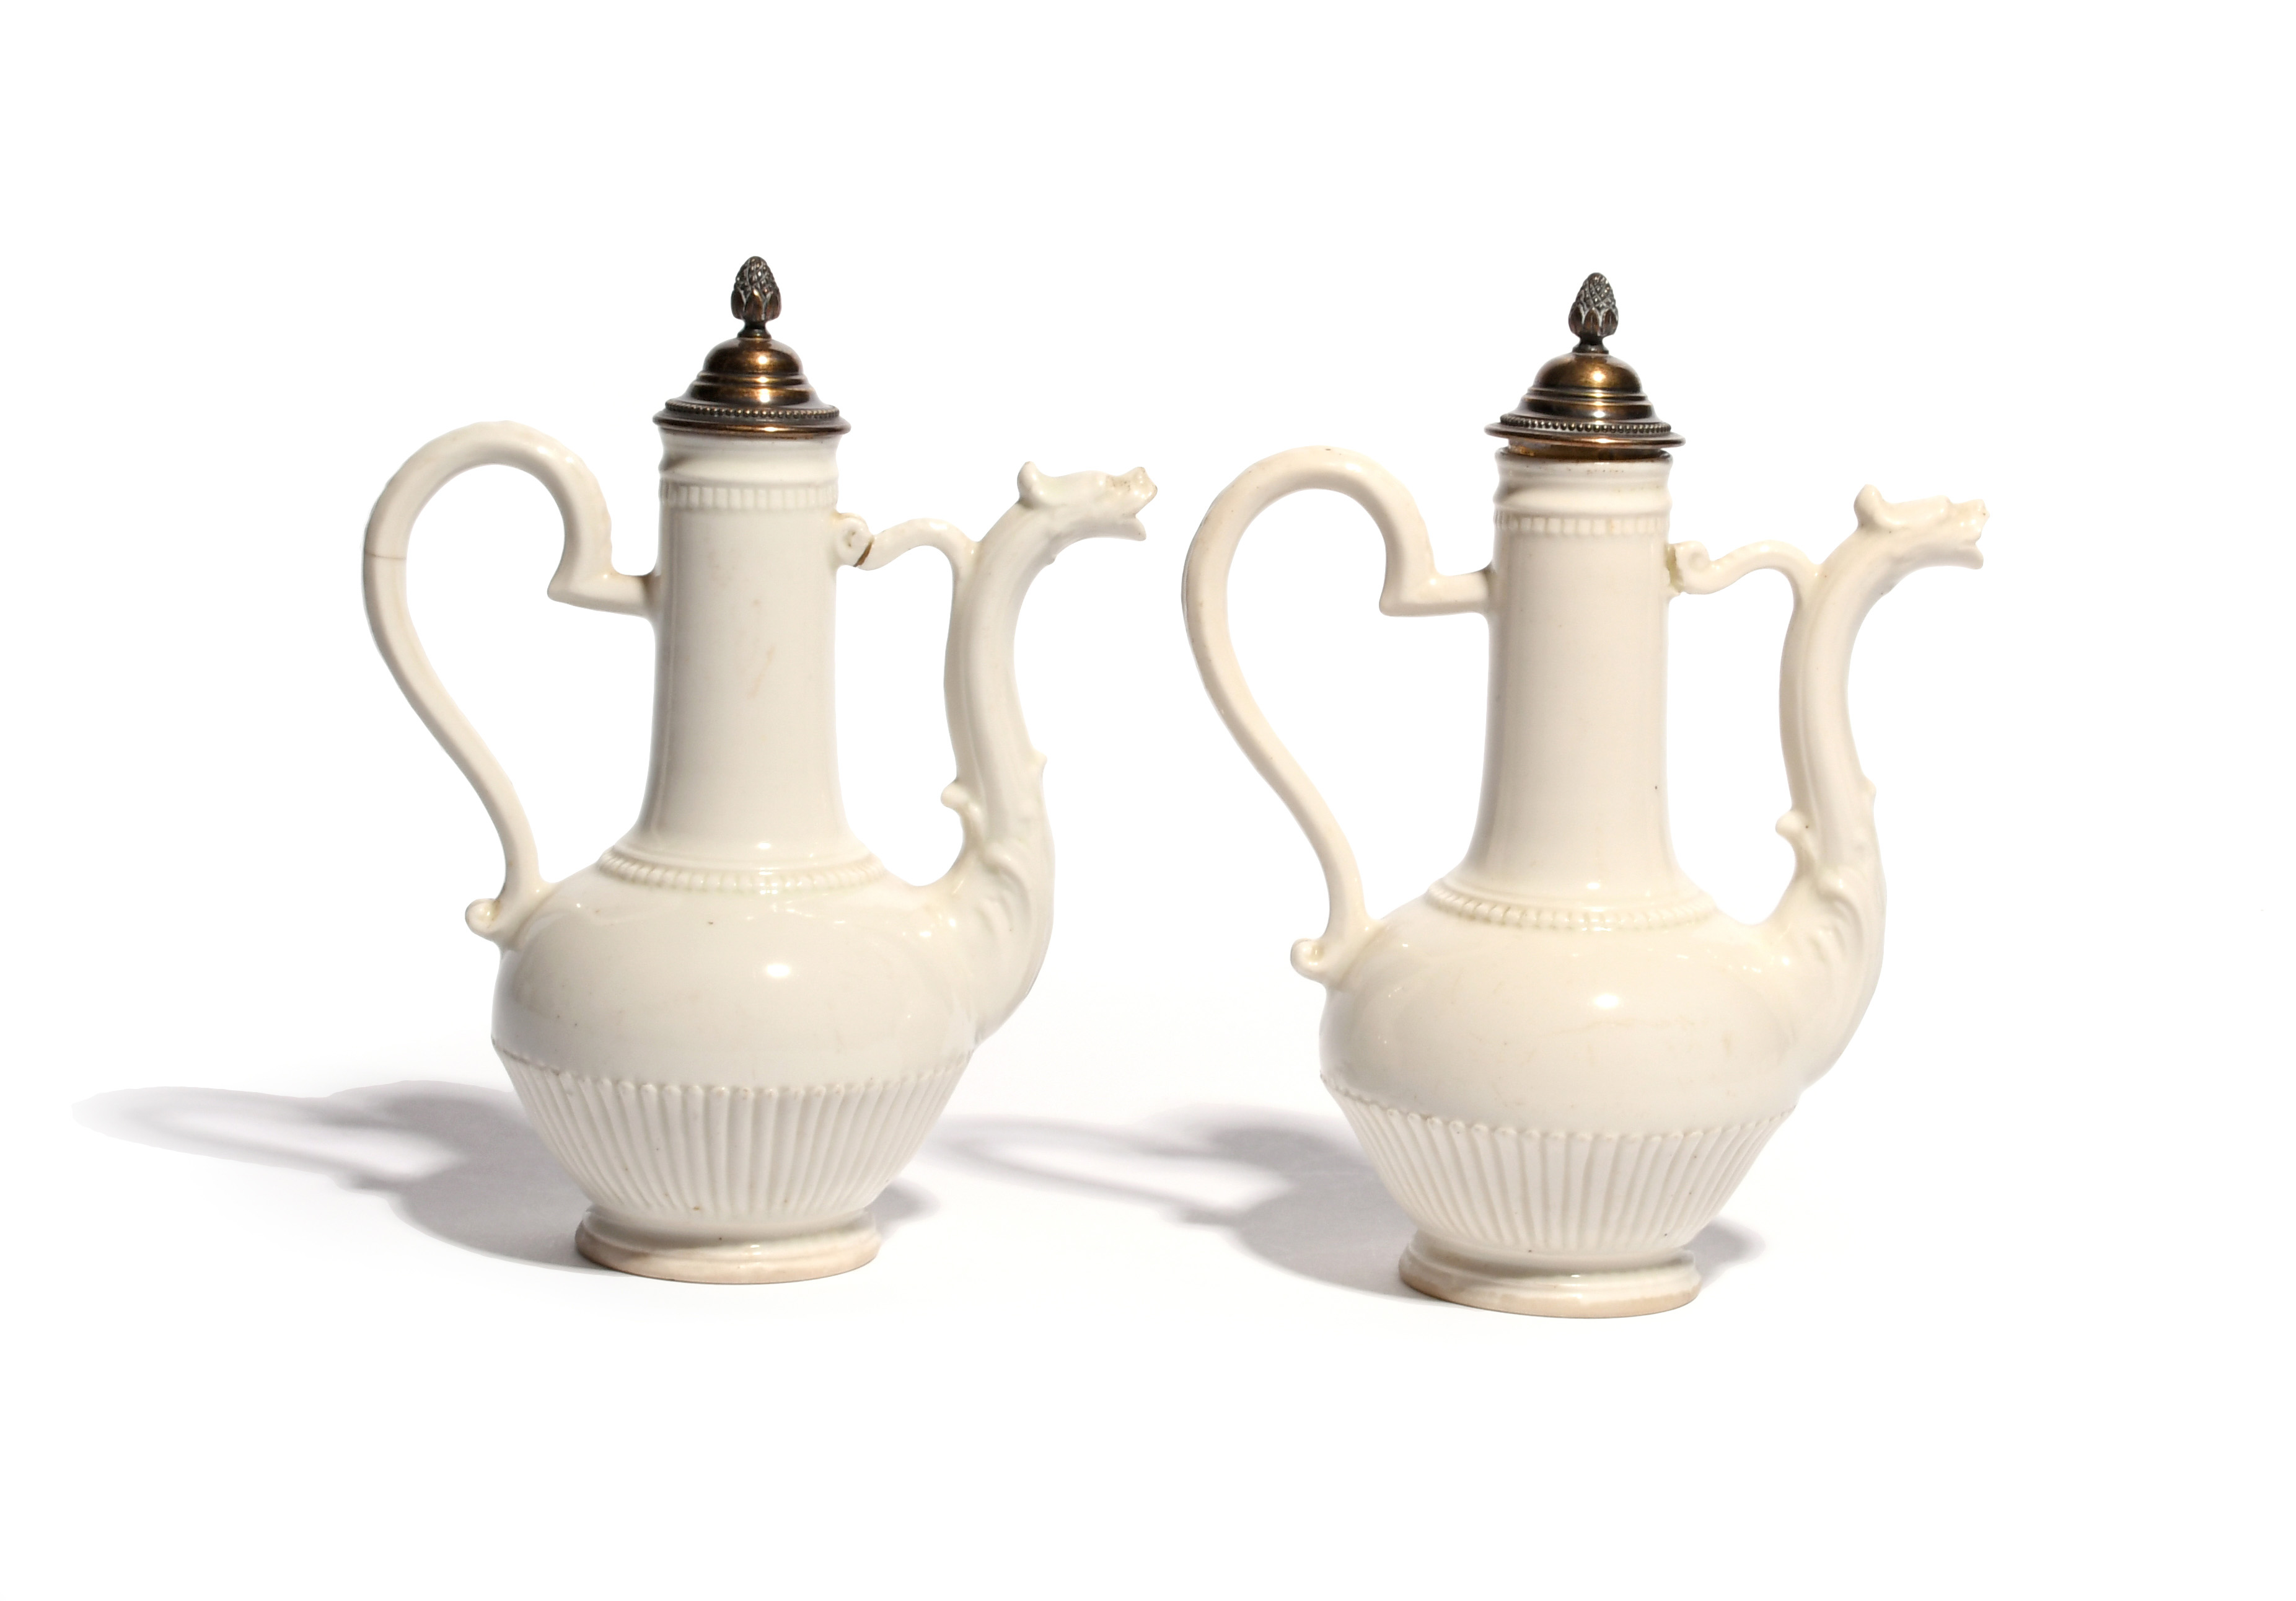 A pair of Italian porcelain ewers and silver covers c.1770, probably Buen Retiro, in the manner of